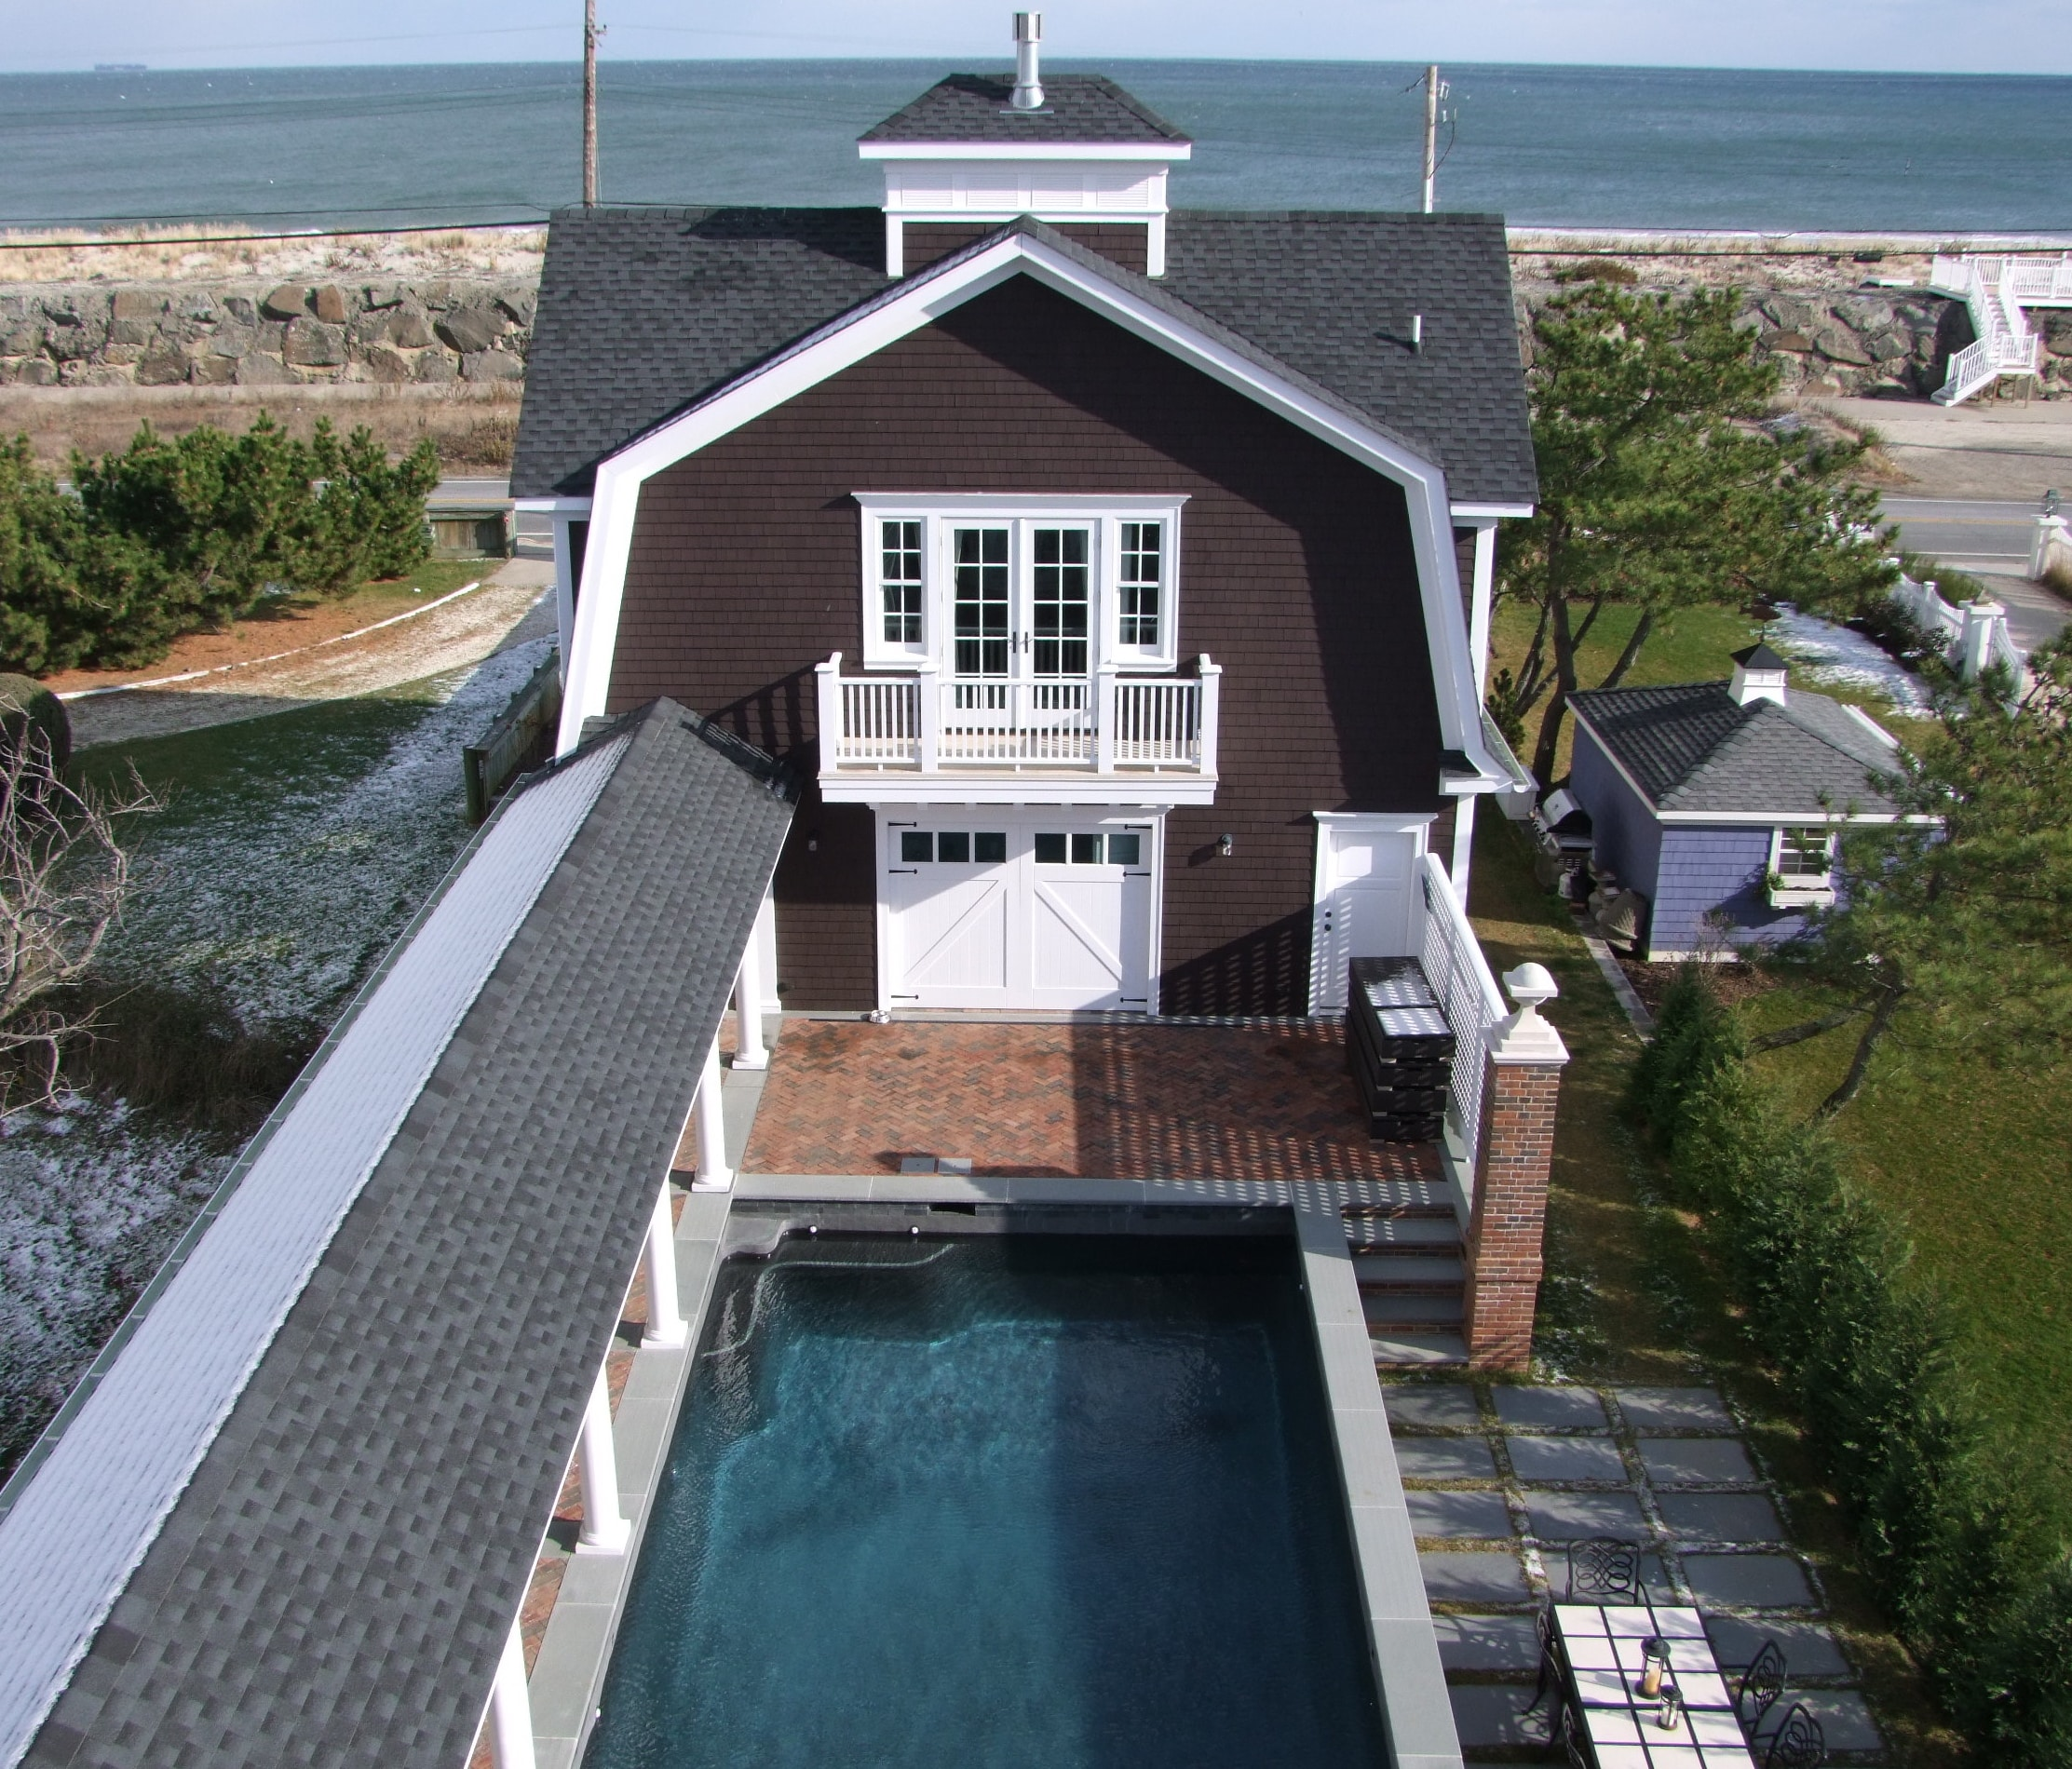 104. White Classic Z Brace (CL01) on a beautiful seaside house.